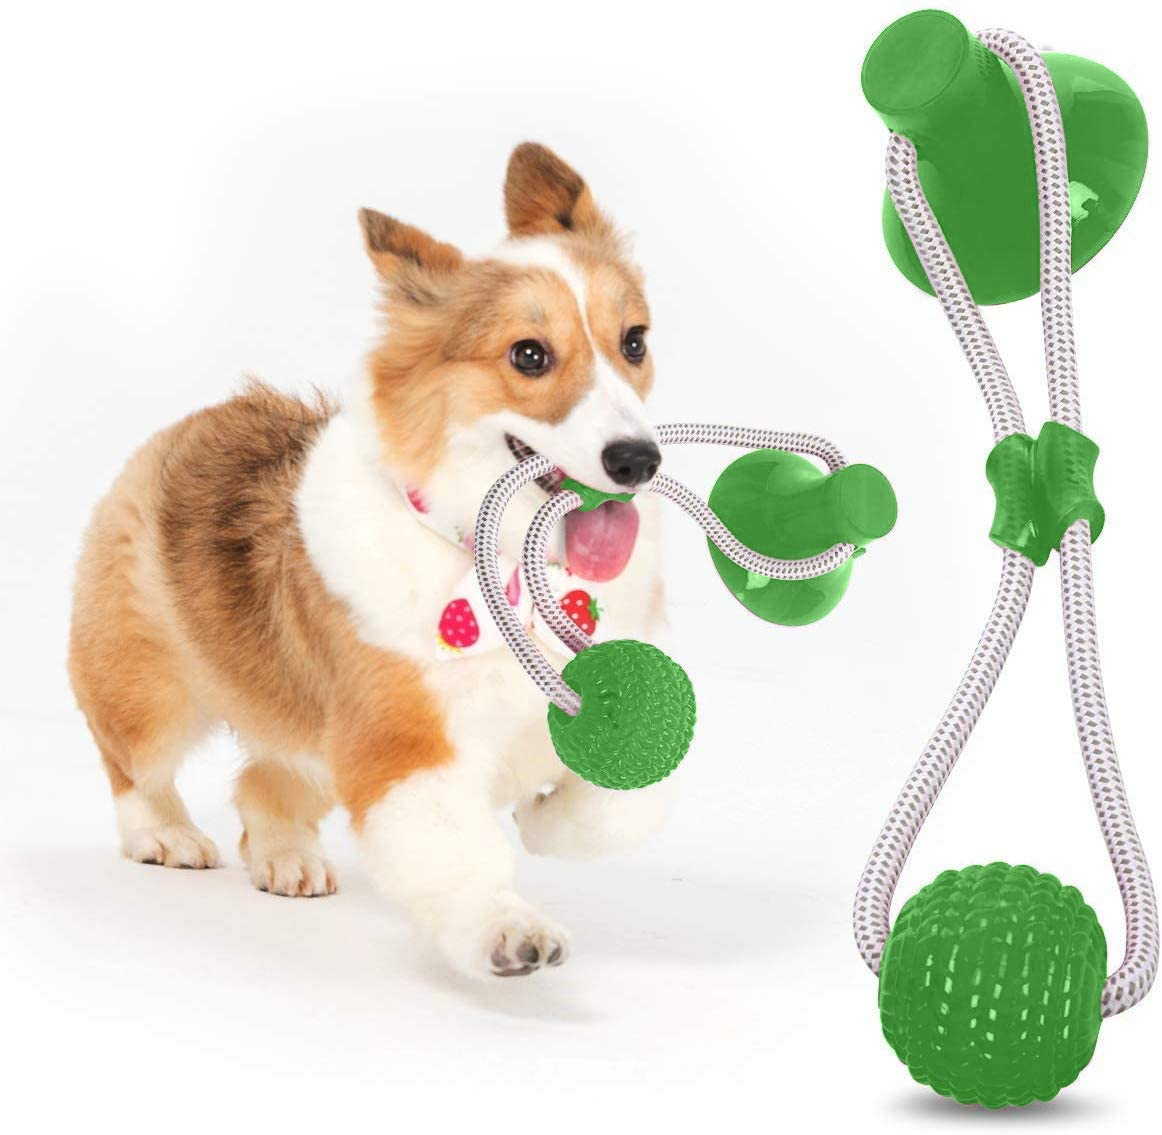 Radorock Pet Self-Playing Rubber Ball Toy with Suction Cup, Dog Rope Toy Interactive Molar Chew Rubber Toy, Toothbrush Puppy Dental Care Accessory